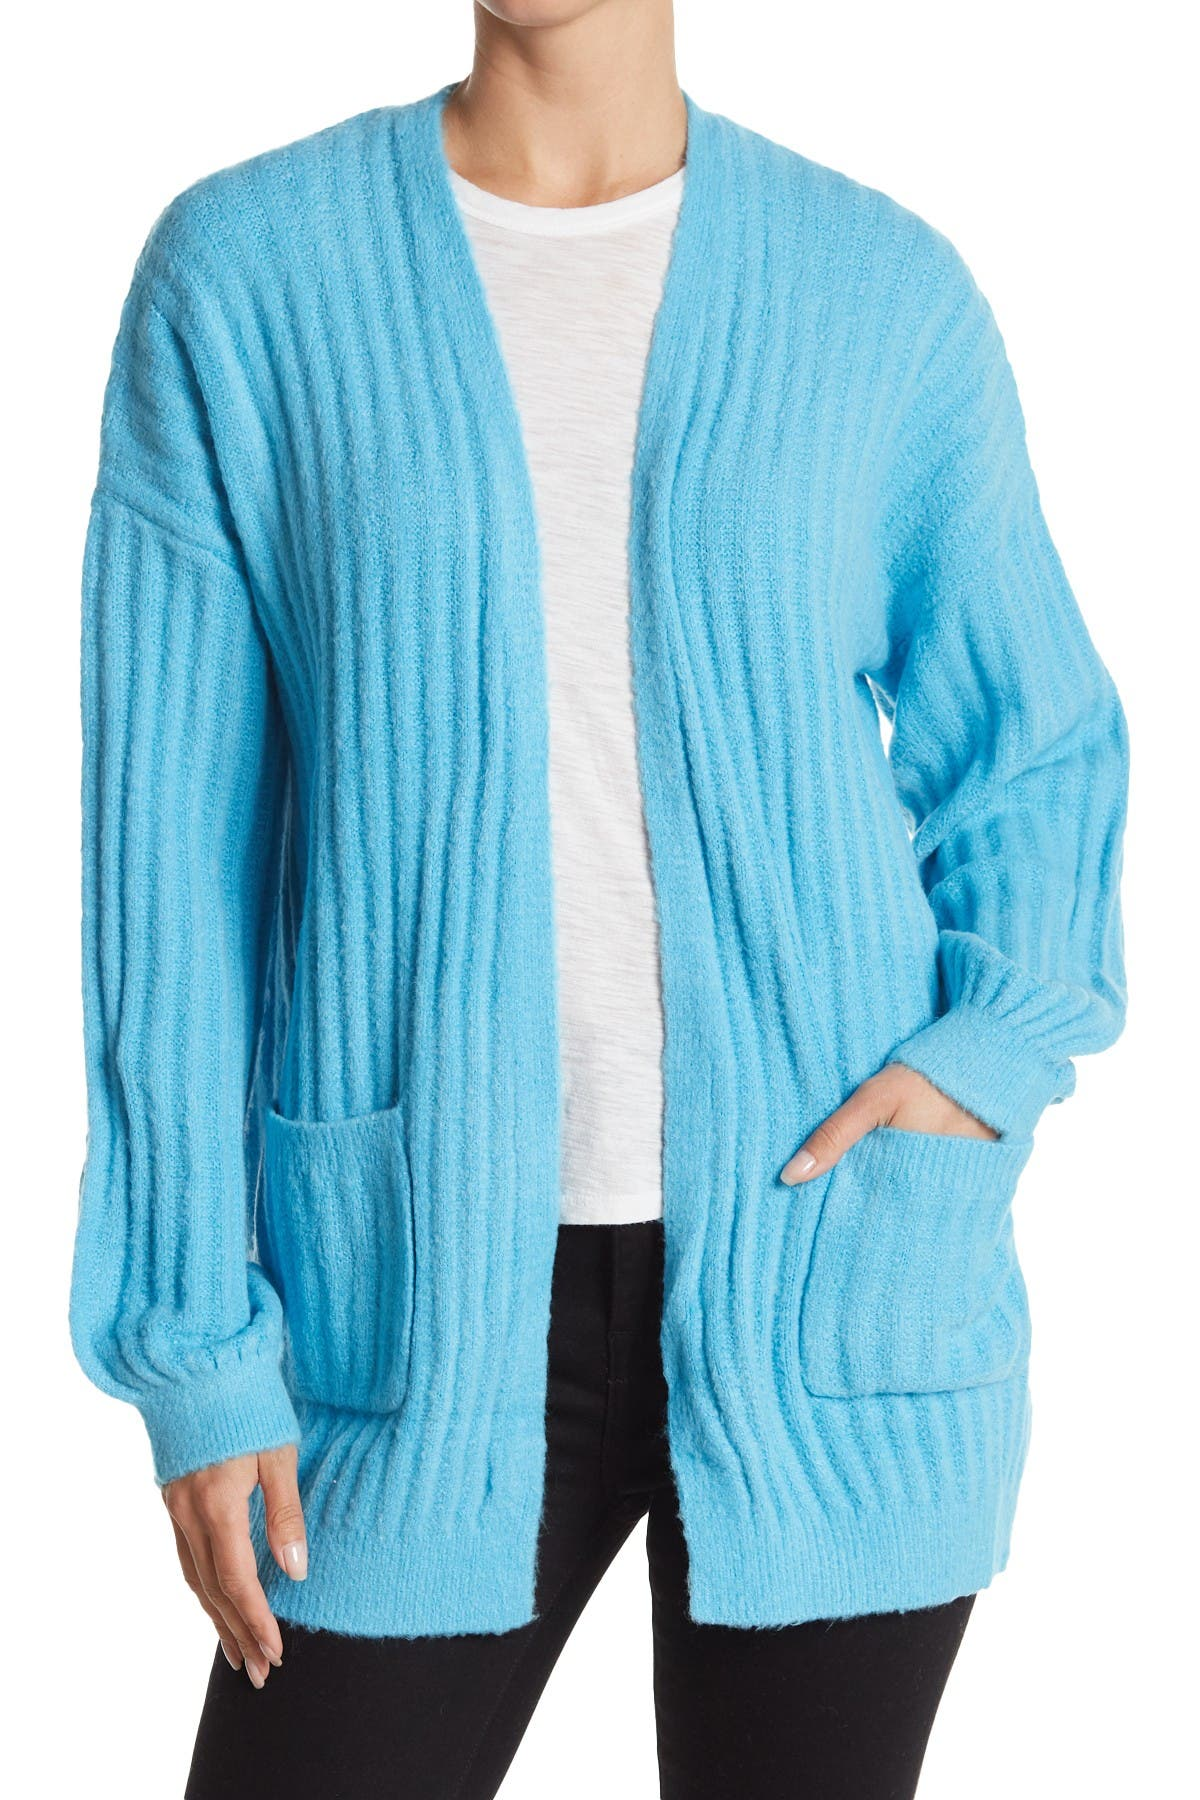 Image of Woven Heart Ribbed Knit Open Front Cardigan